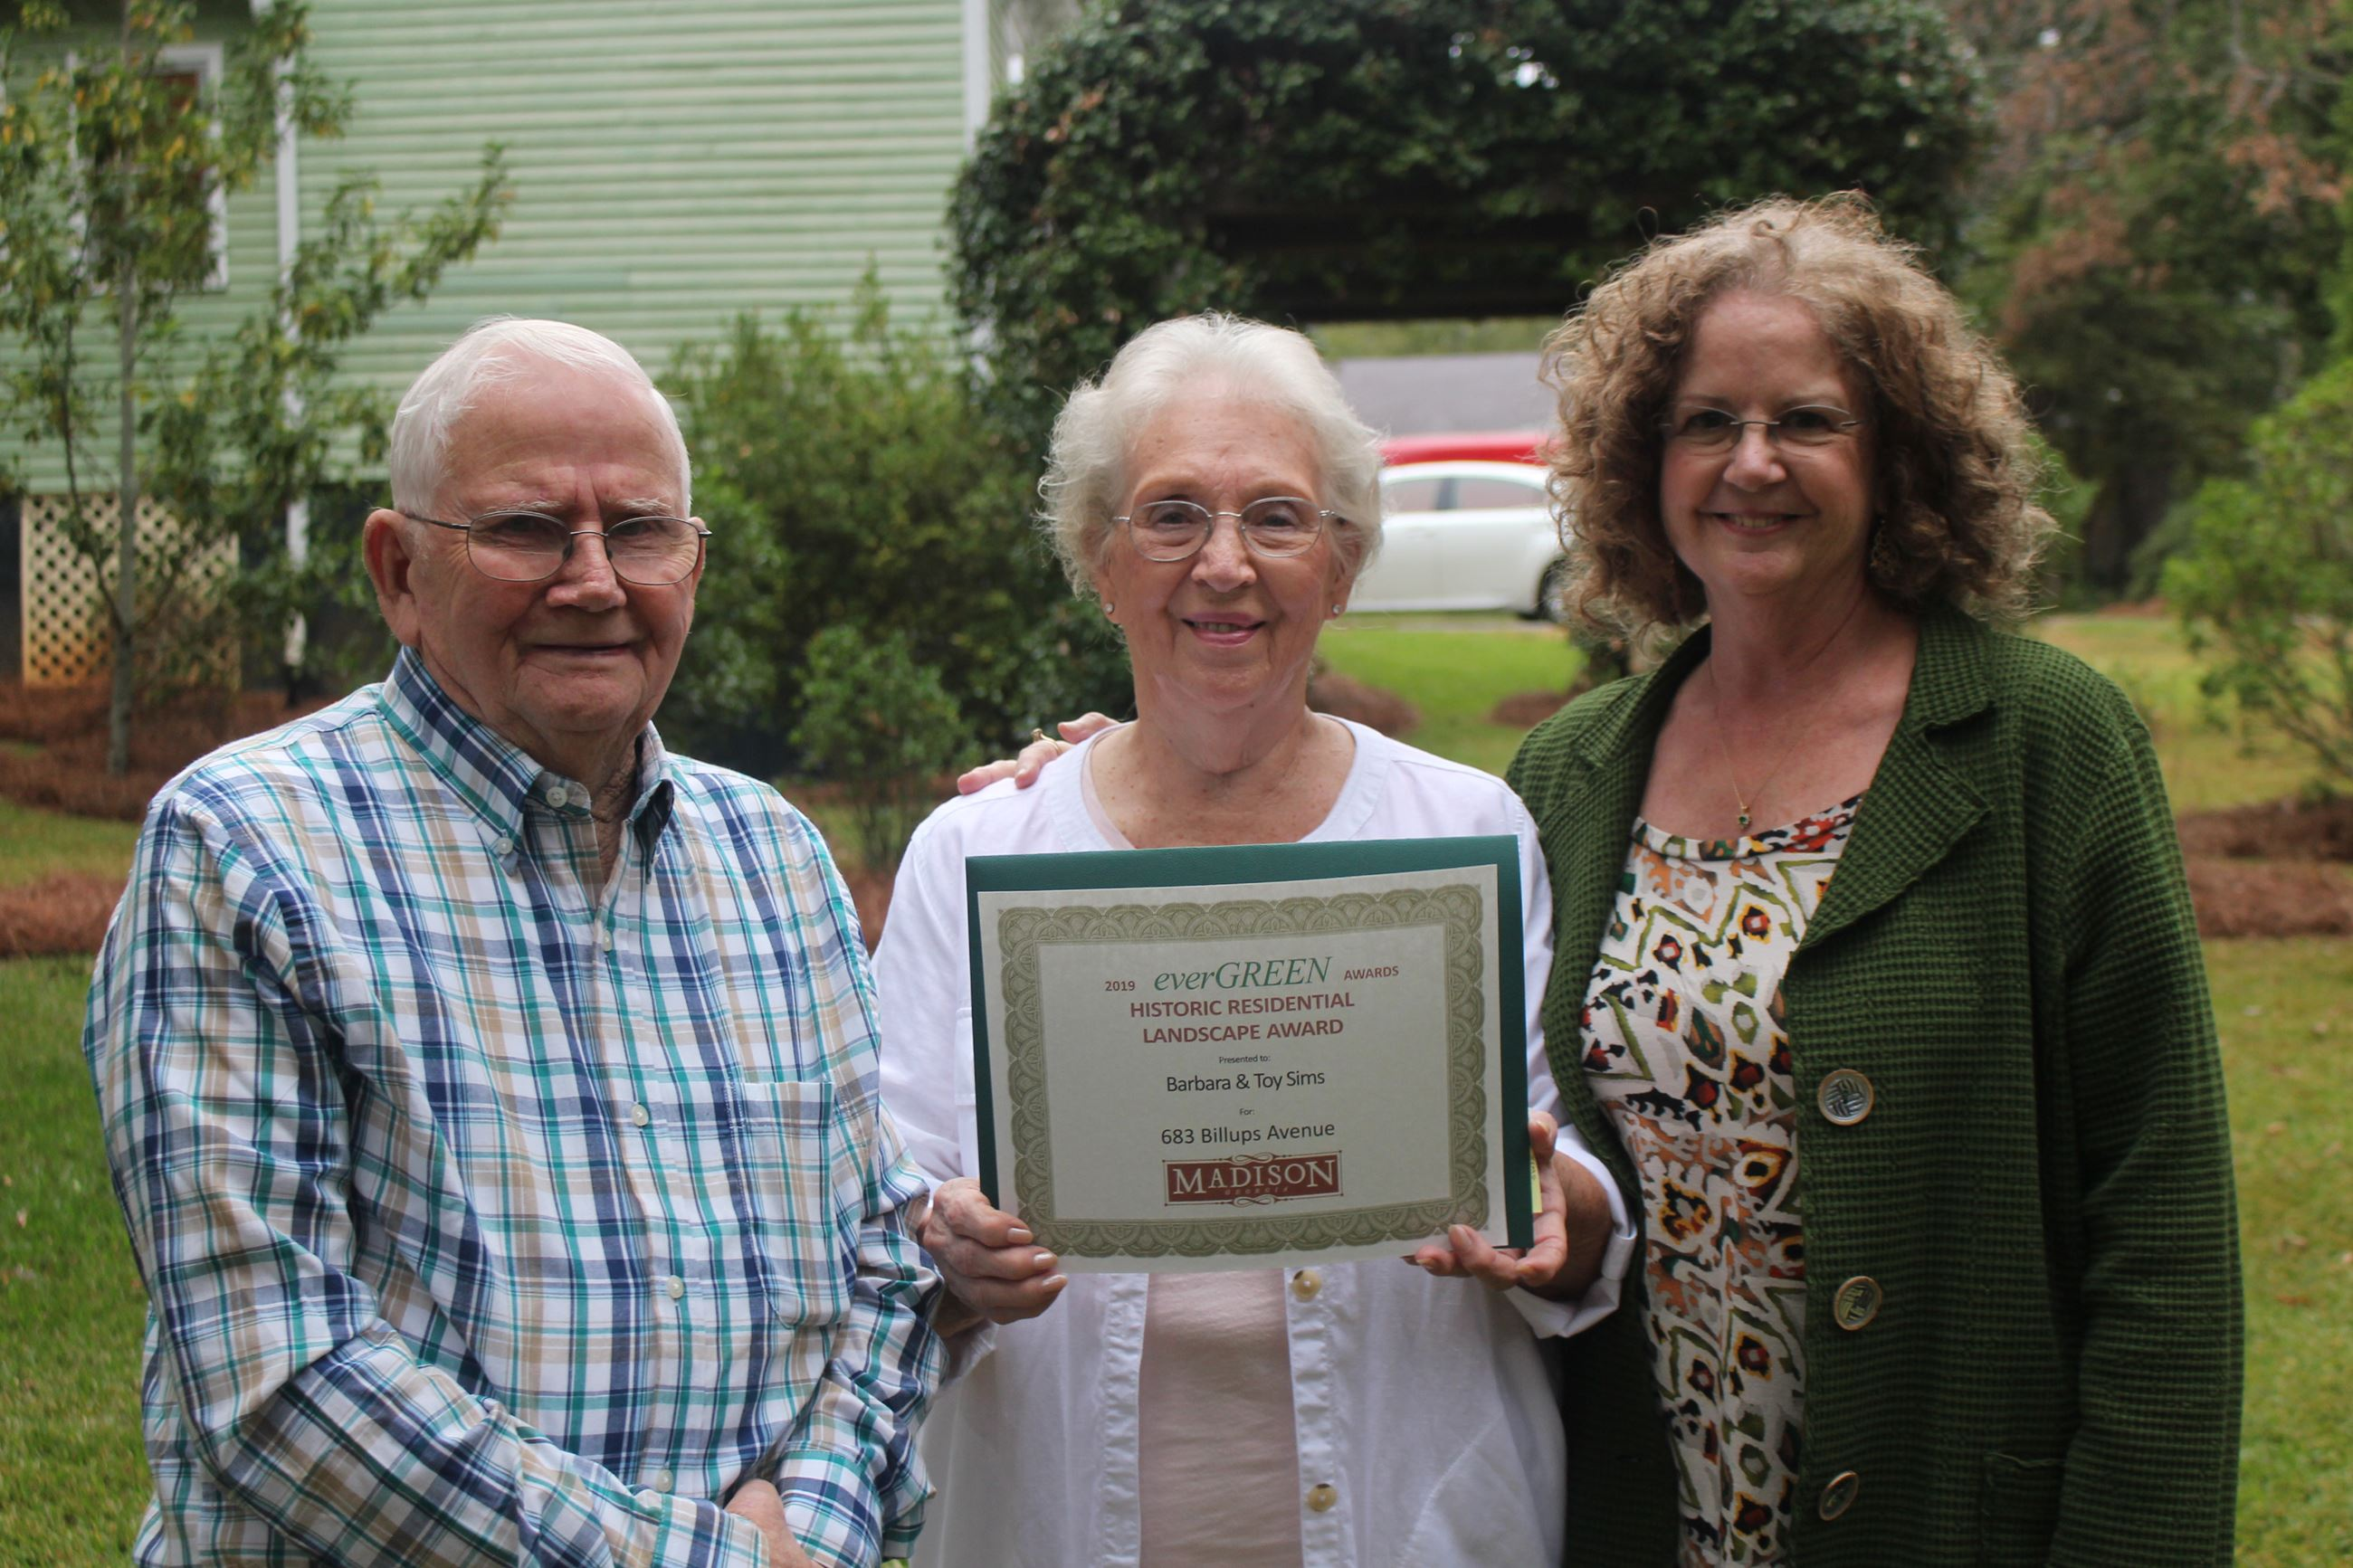 Barbara and Toy Sims receiving the Heritage Residential Landscape Award from Sally Tuell